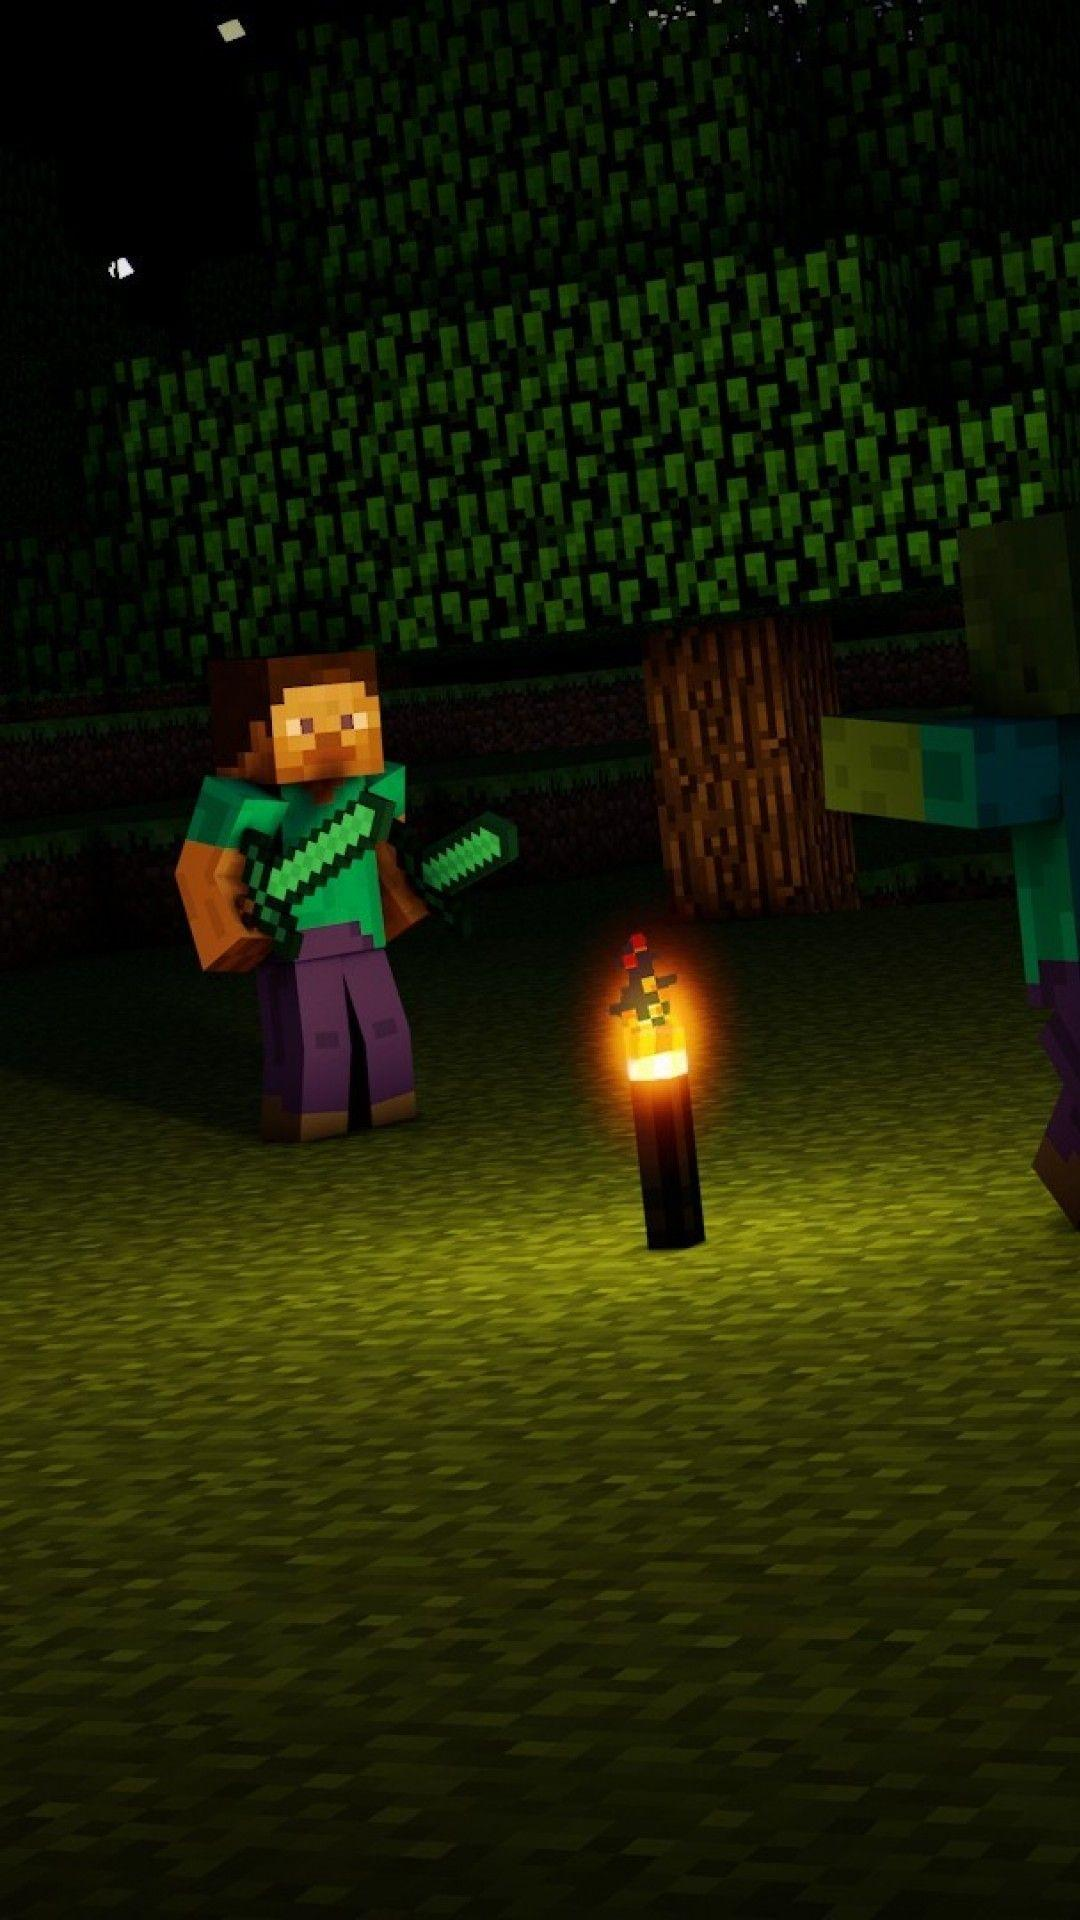 Minecraft steve wallpapers wallpaper cave - Creeper iphone background ...